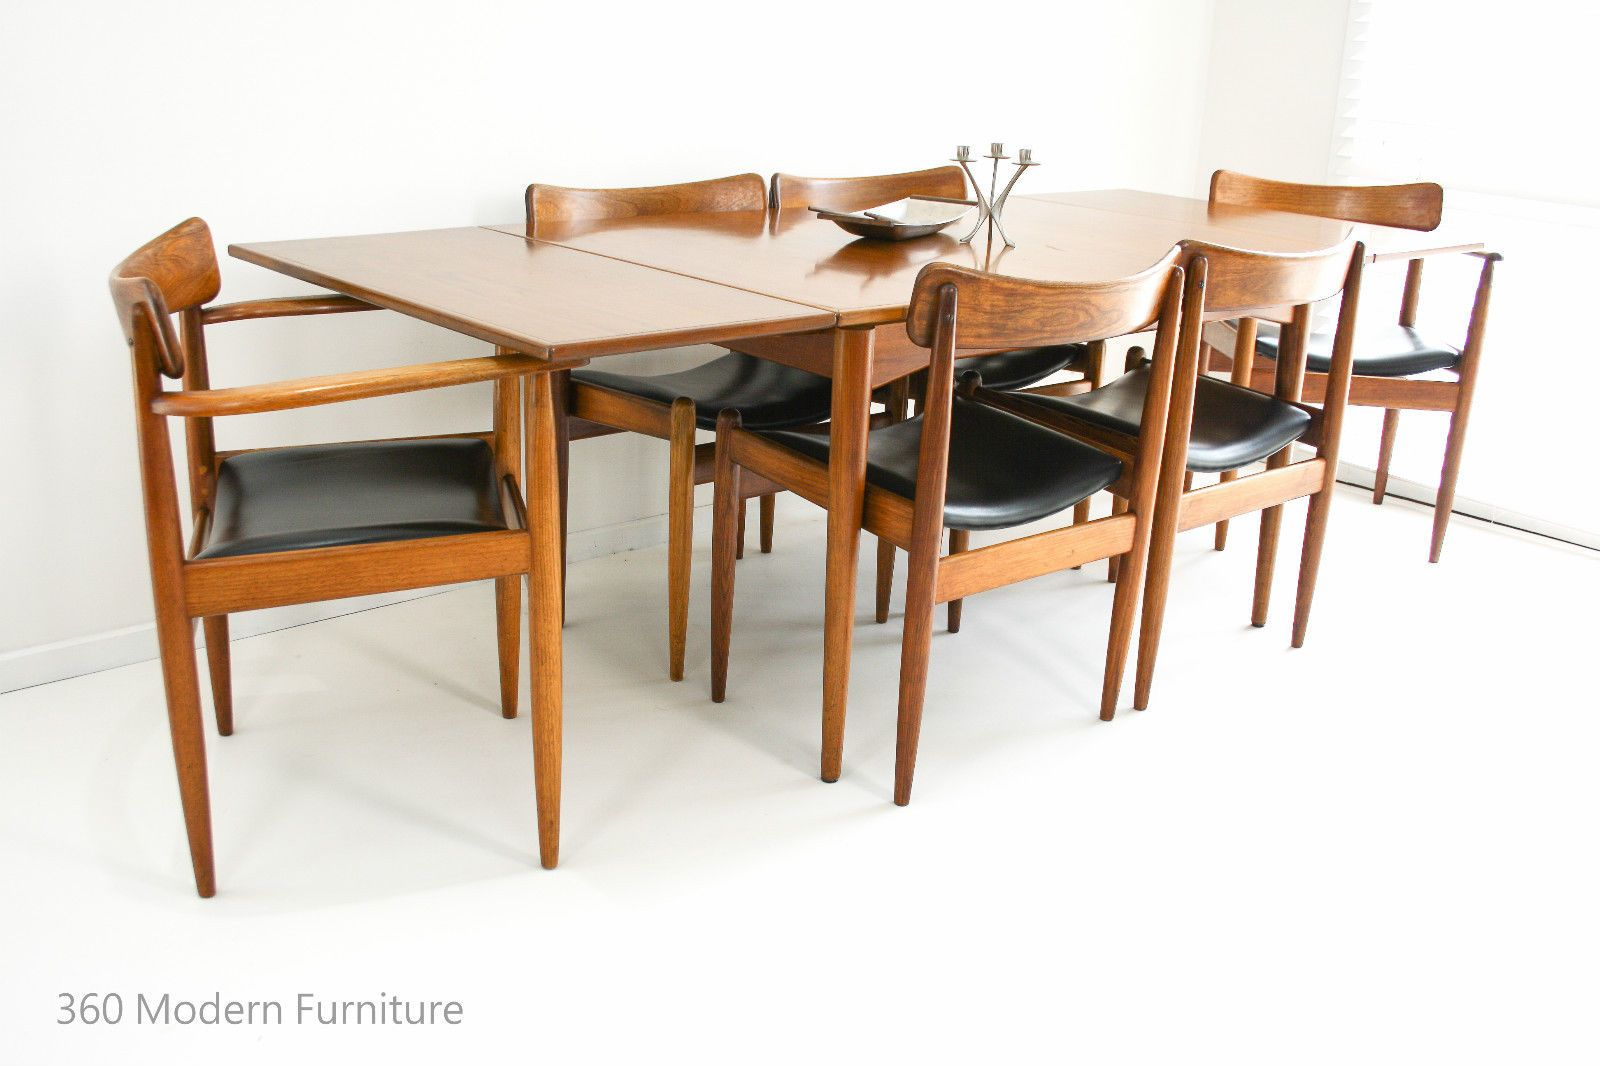 Pin On Mid Century Furniture By 360 Modern